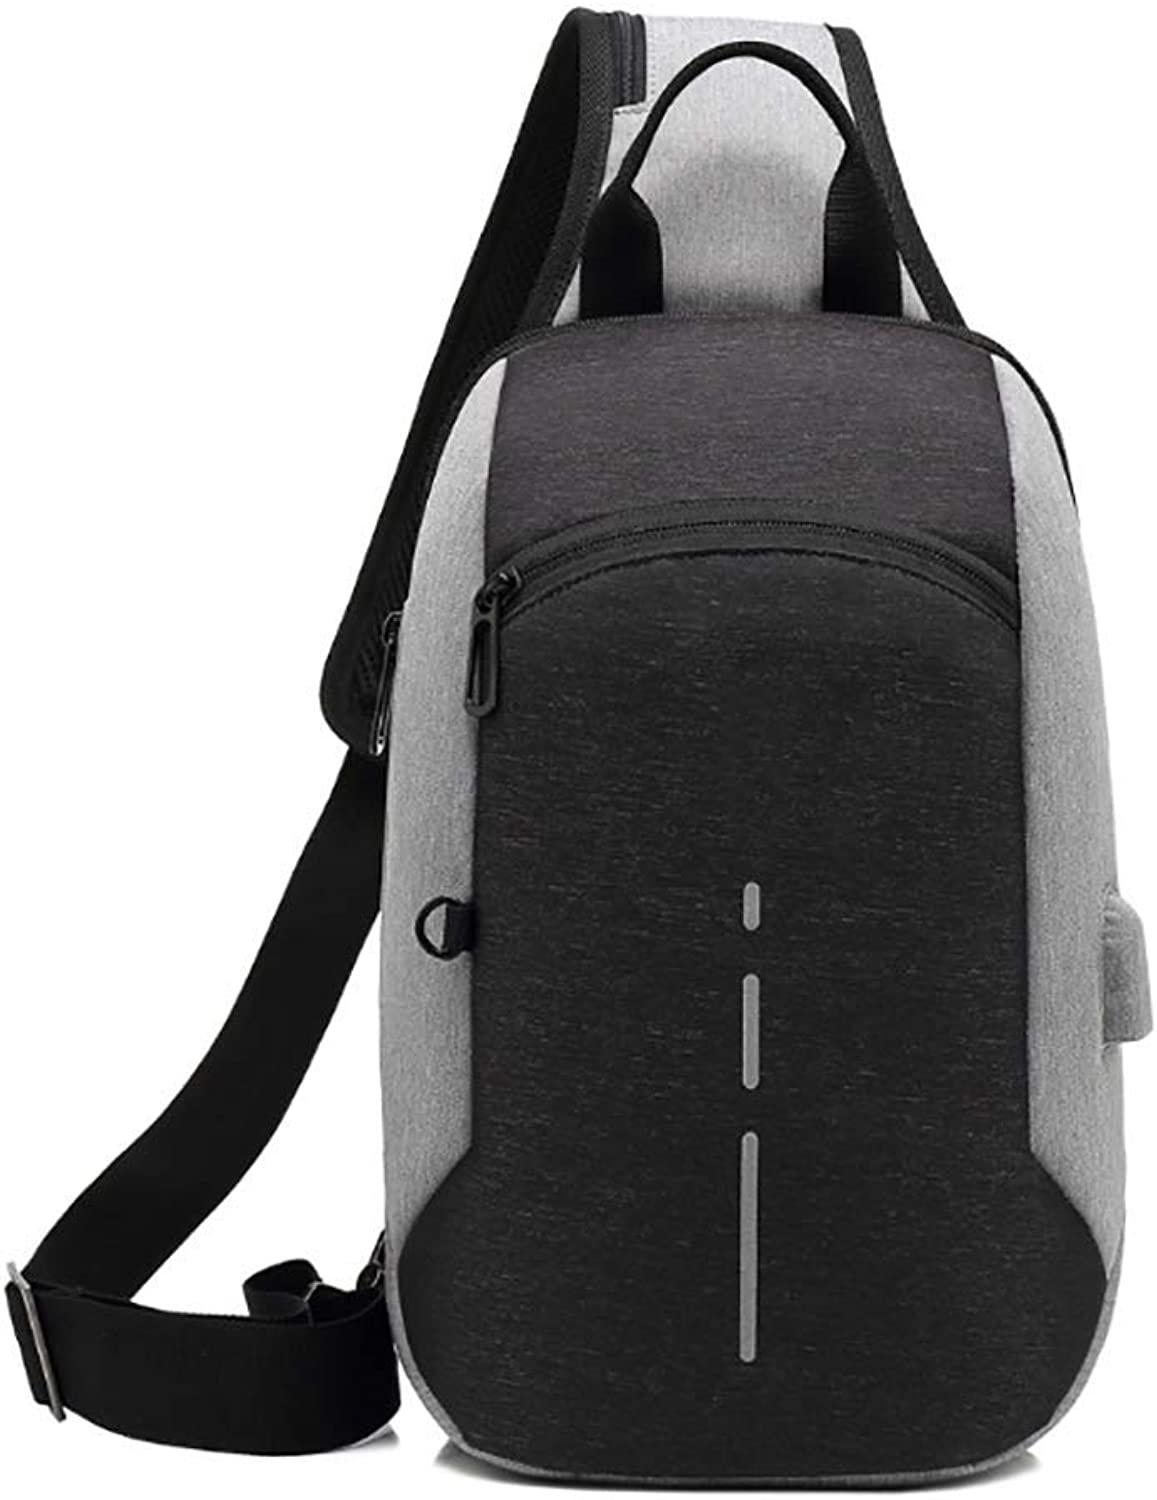 Anti Theft Shoulder Chest Crossbody Backpack Sling Bag USB Charging Daypack with Tablet Compartment